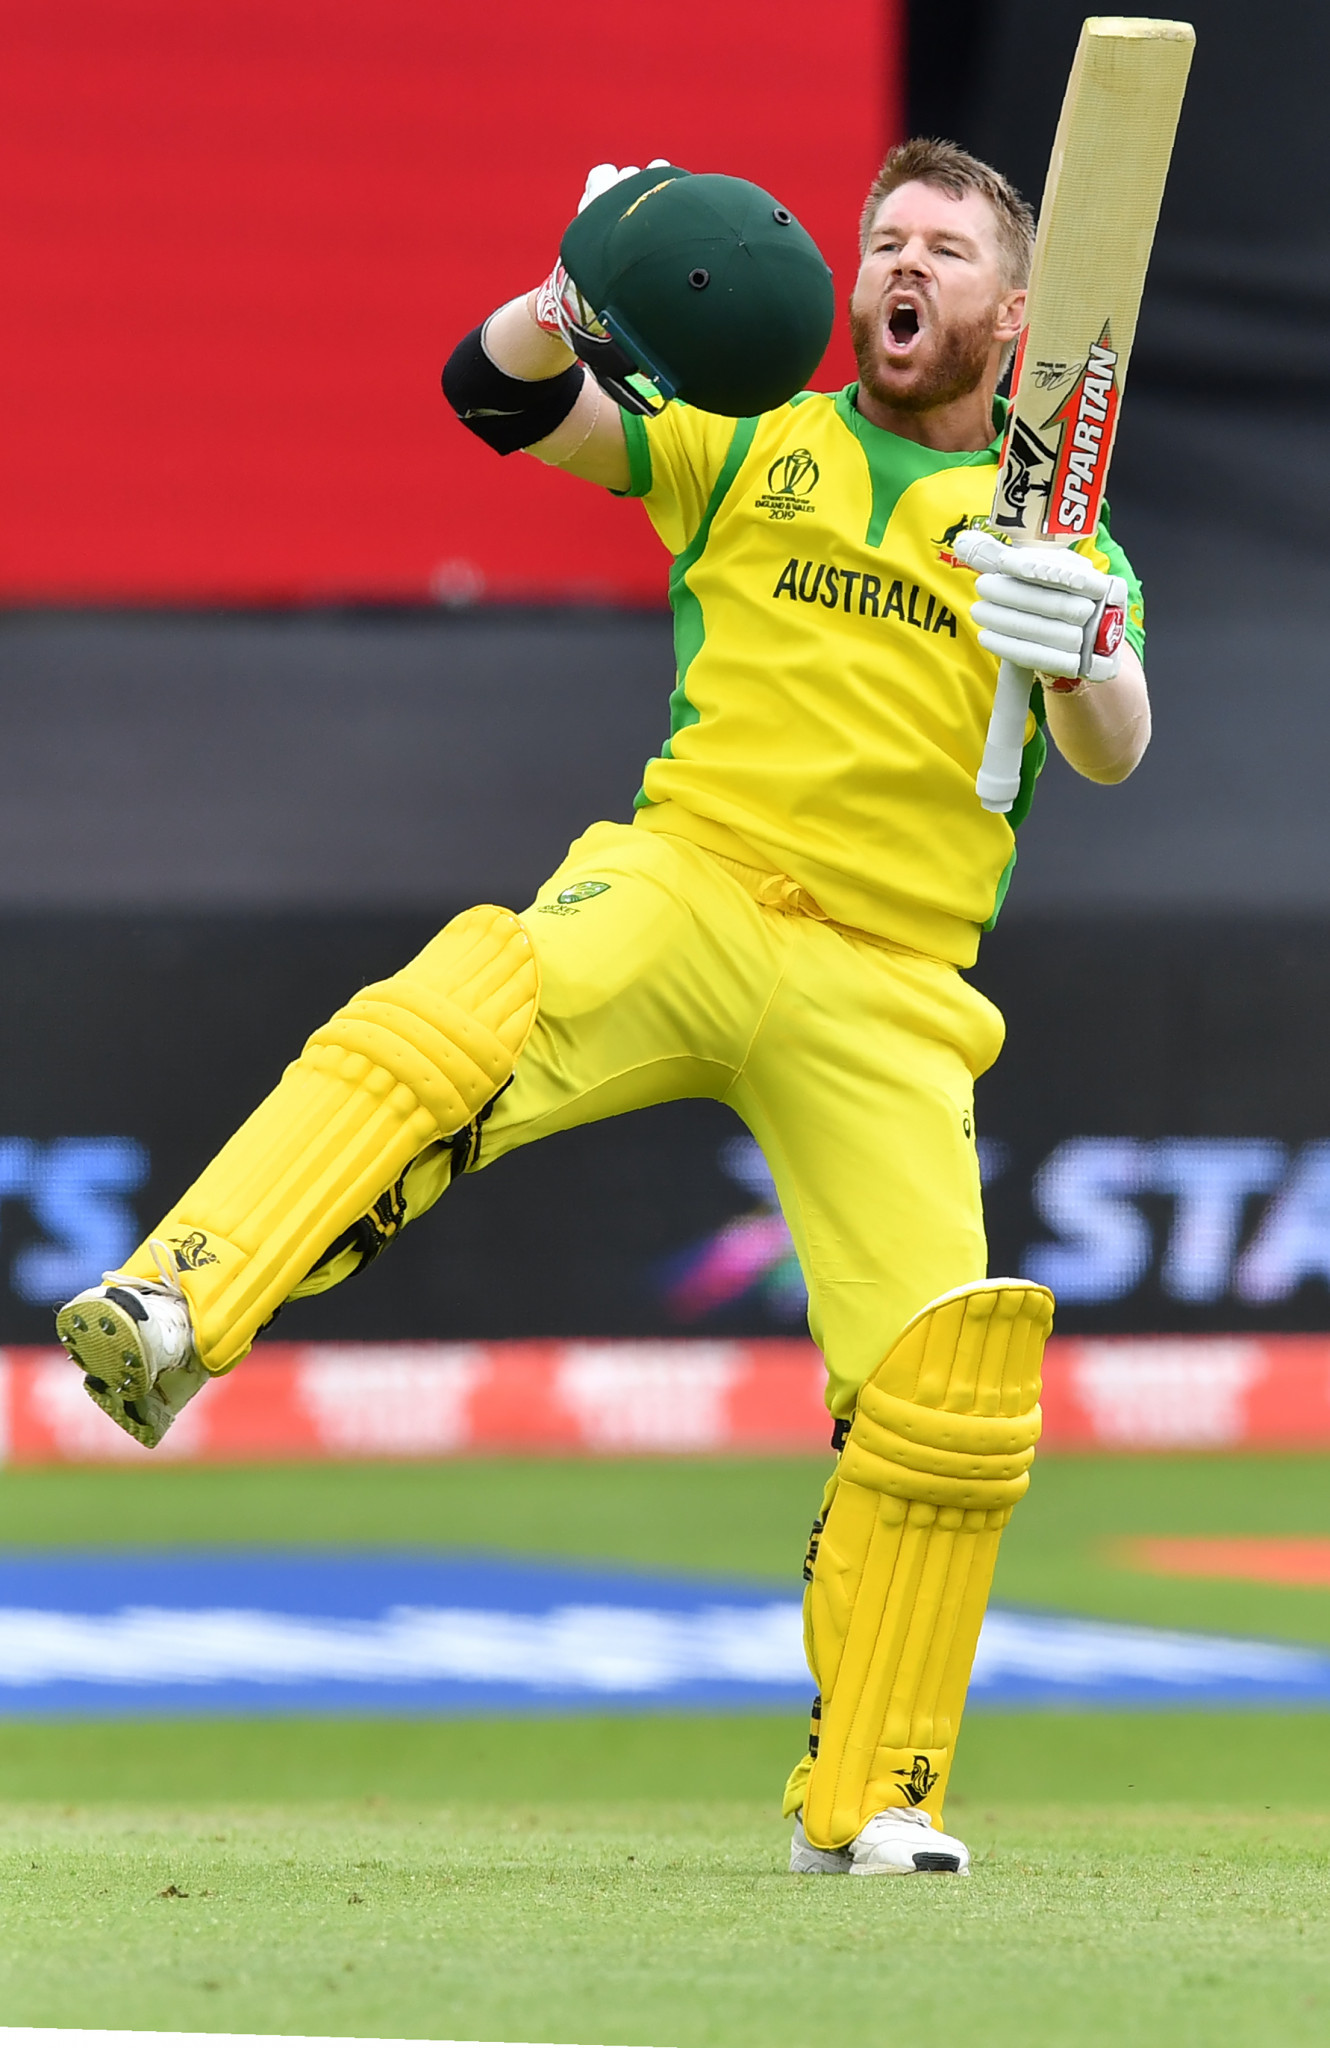 David Warner made a 102-ball century – his first at international level since a year-long ban for ball tampering ©Getty Images